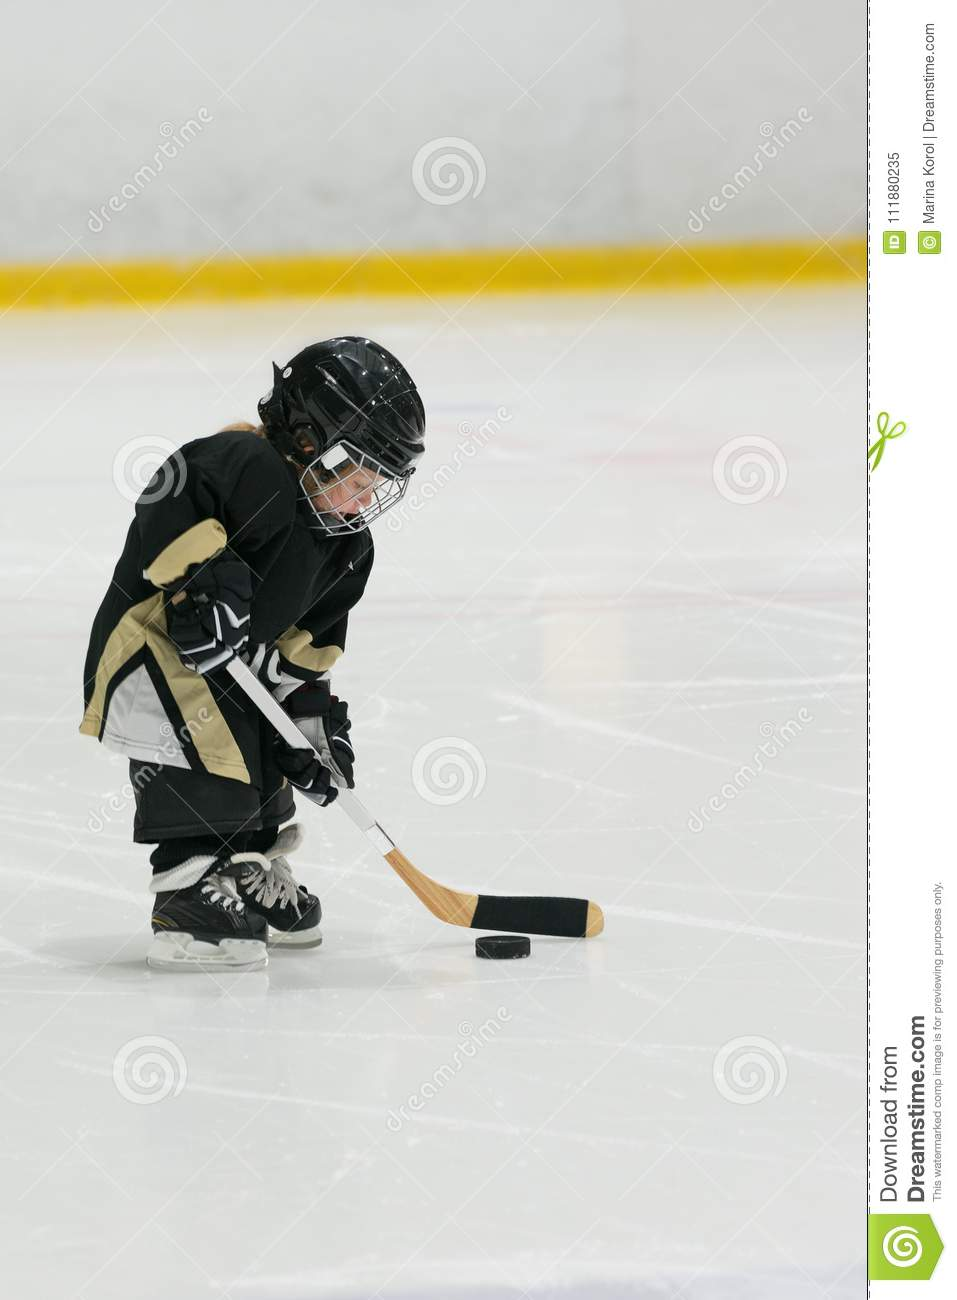 Cute little toddler plays hockey on ice with full equipment